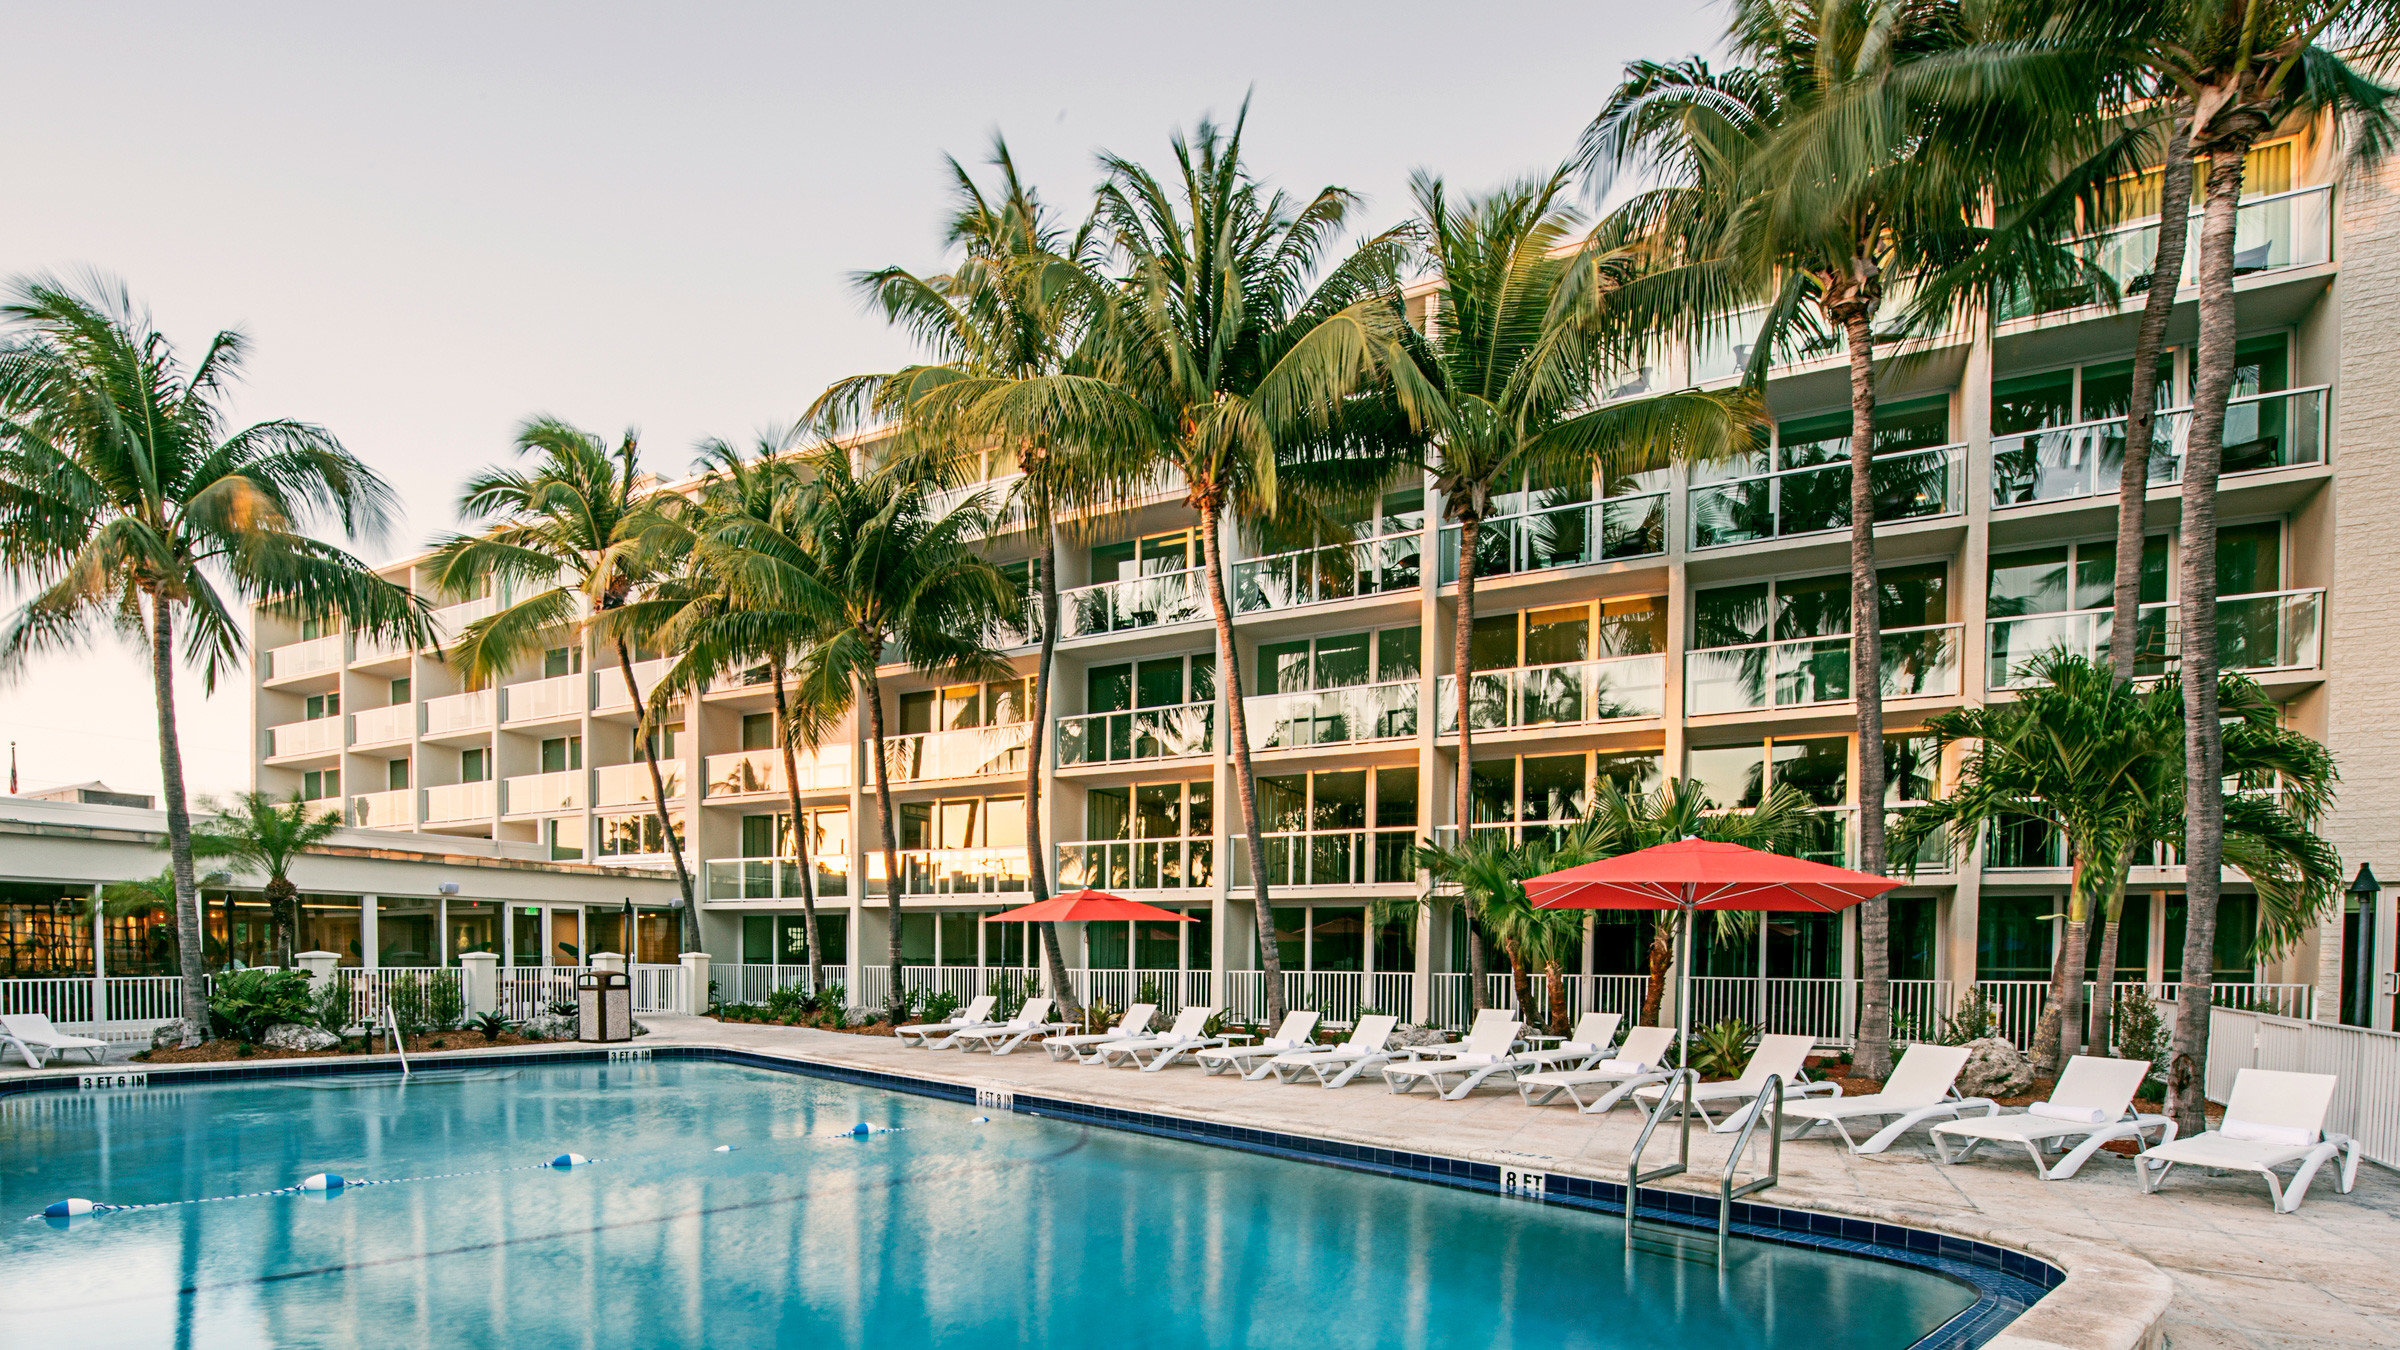 Beach Beachfront Hotels Pool Resort Romance outdoor tree water condominium property leisure chair swimming pool vacation marina estate arecales resort town dock caribbean apartment palm lined swimming surrounded